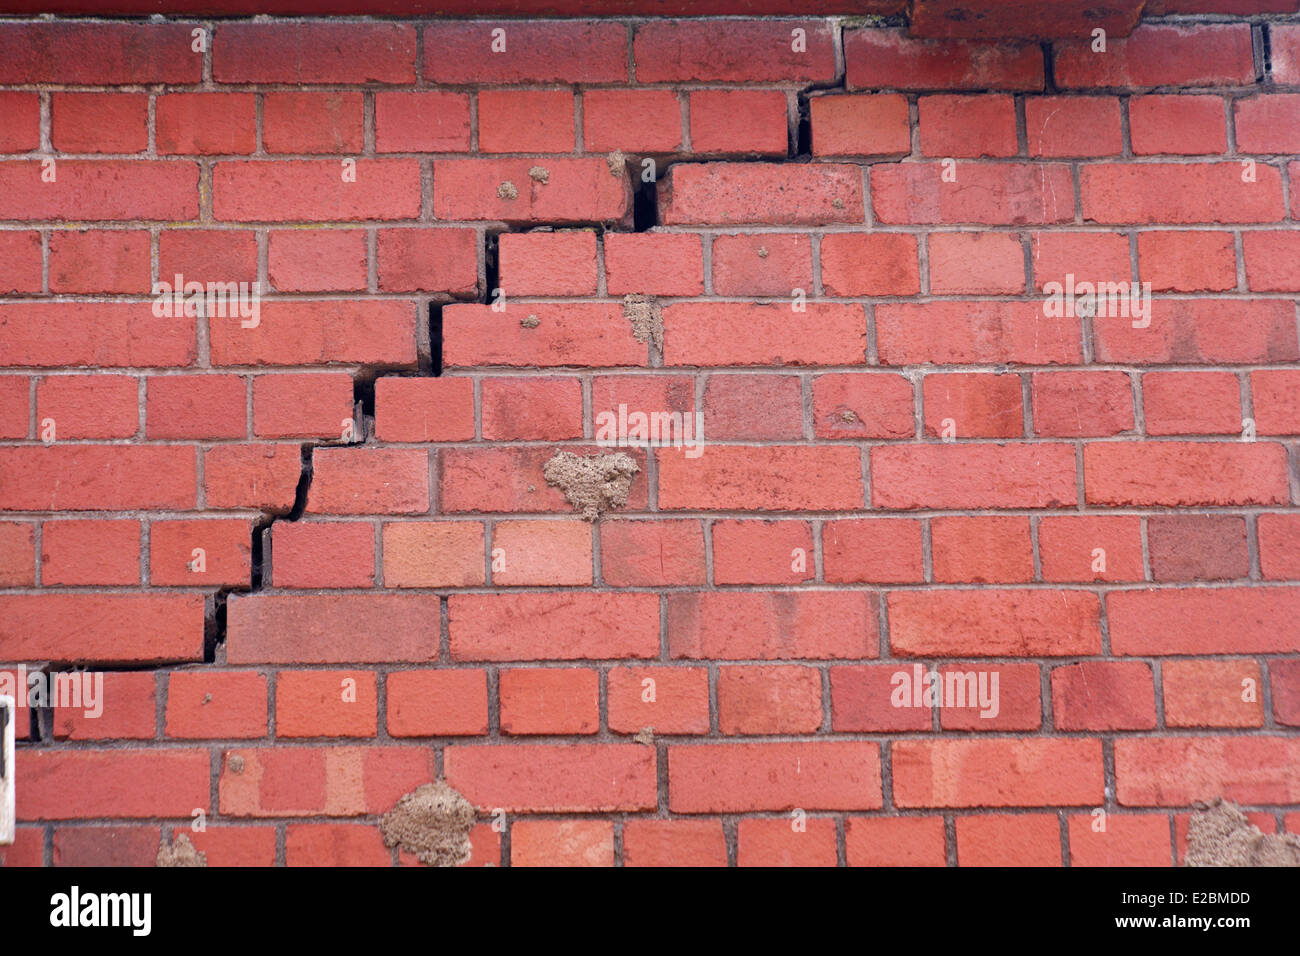 how to cut an opening in a brick wall